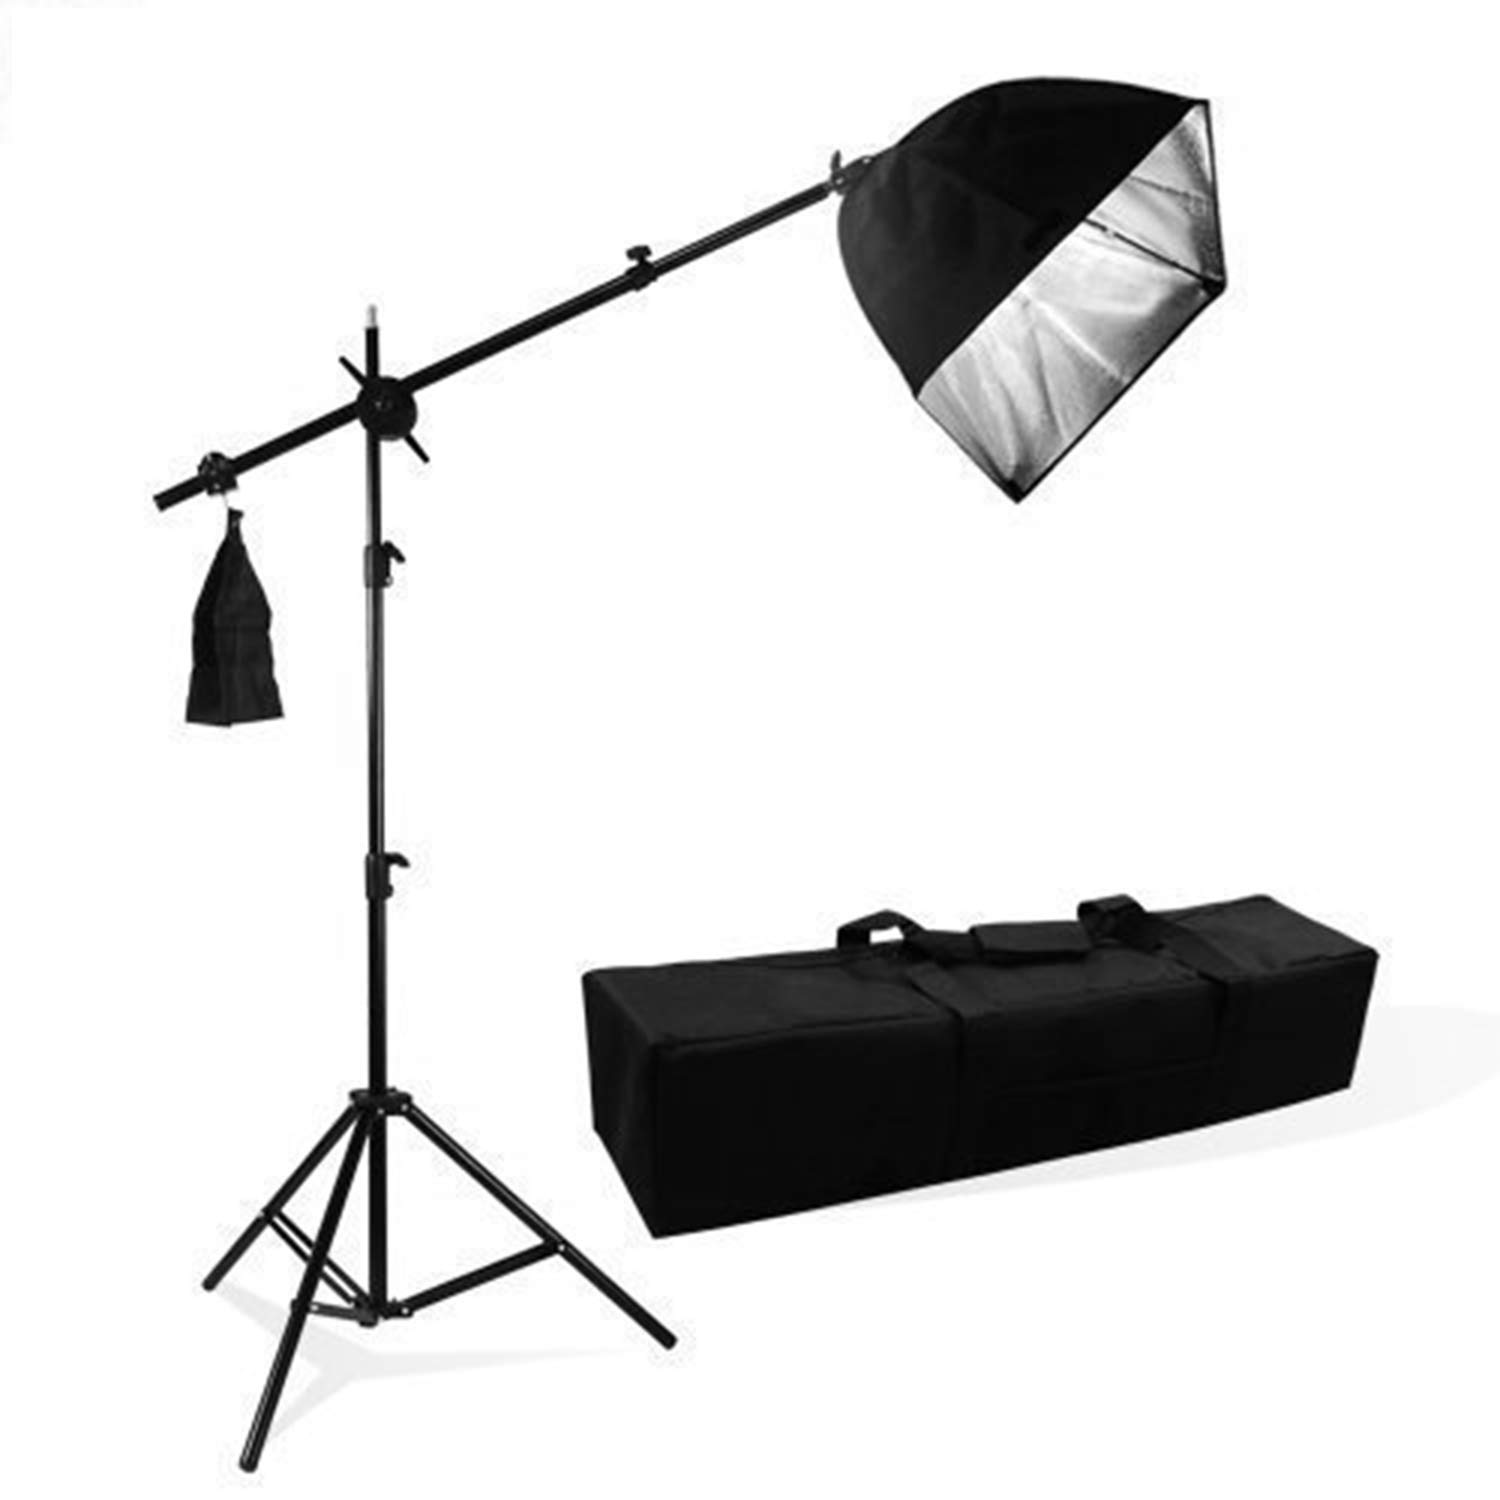 LimoStudio Photography Photo Studio Lighting Kit Softbox Lighting with Photo Bulb Socket & Boom Arm Stand Hair Light Kit, Light Stand Tripod, Photo Studio, AGG1301